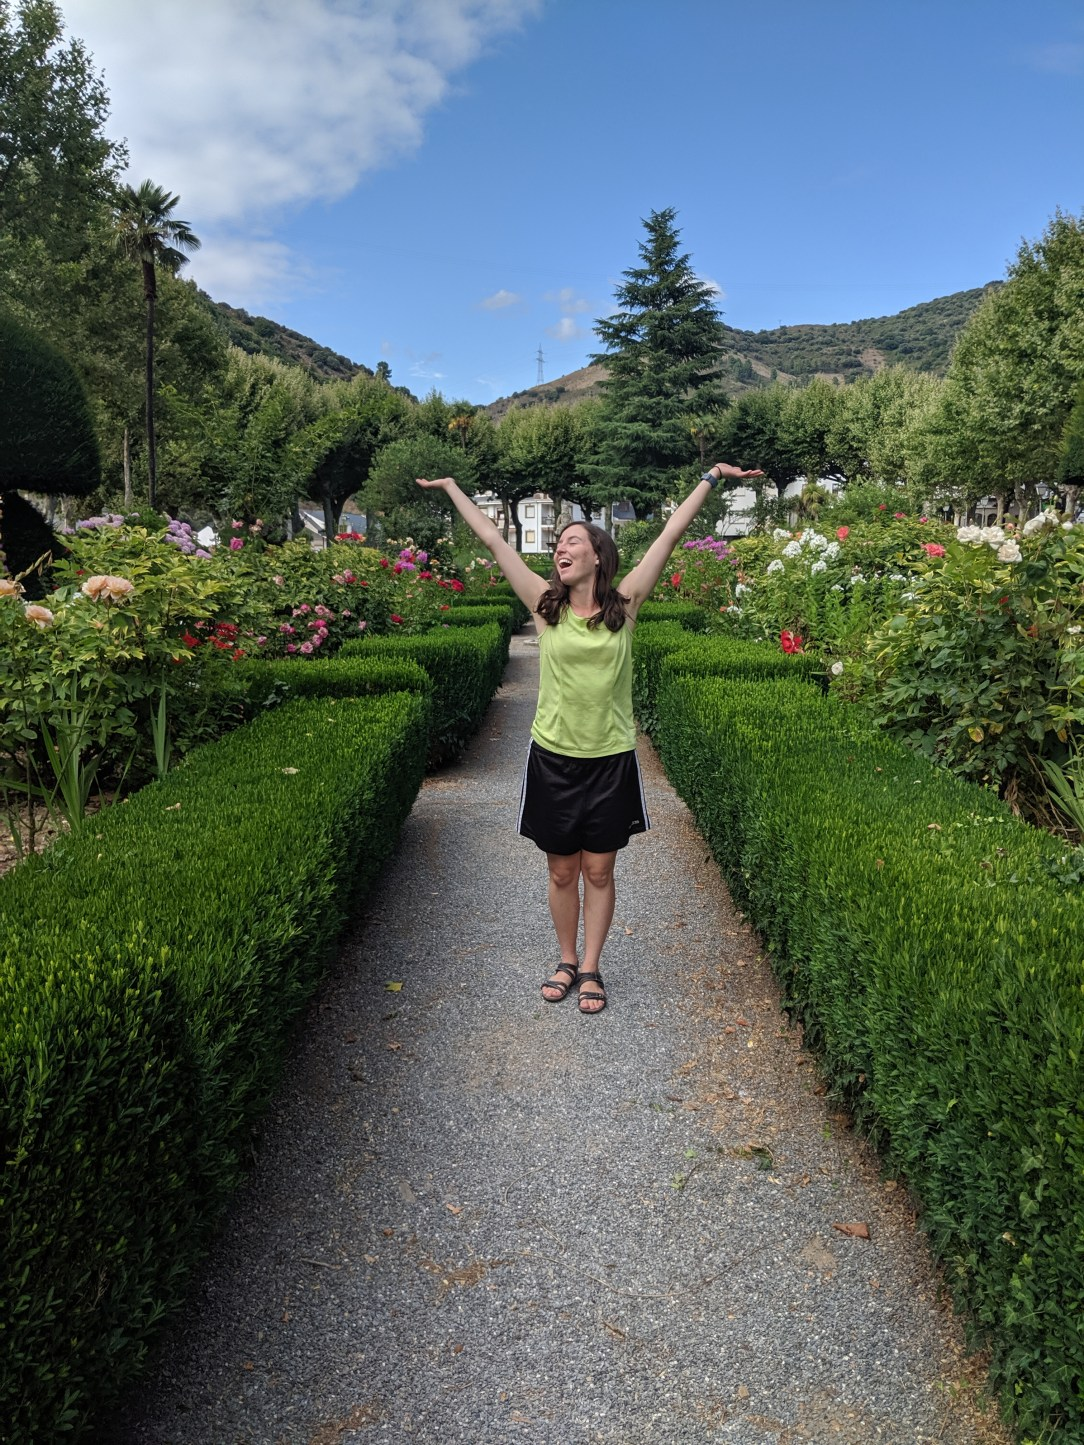 Villafranca, rose garden, Spain, pilgrimage